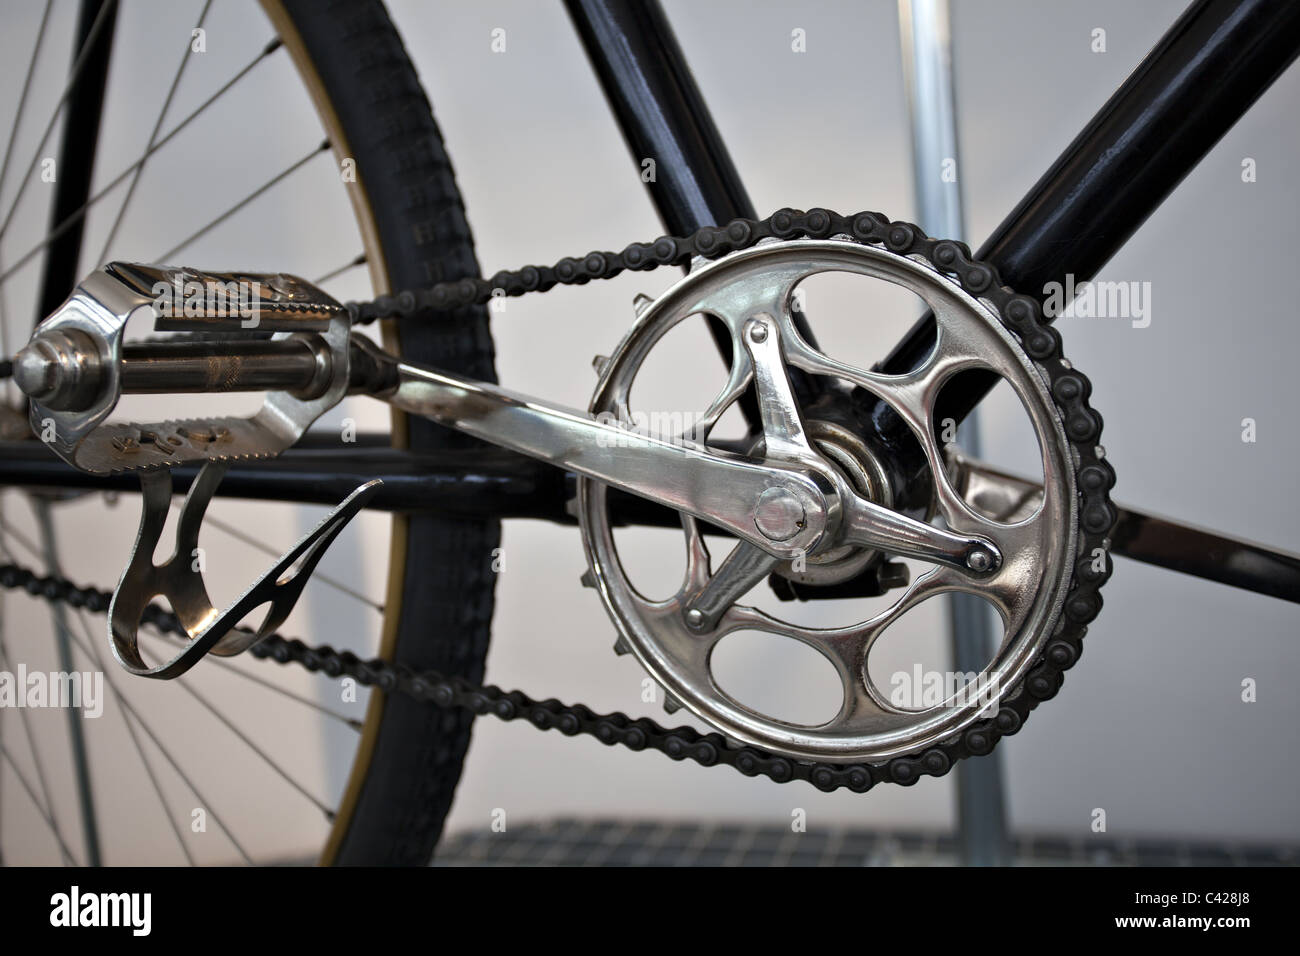 Old times bicycle detail view - Stock Image